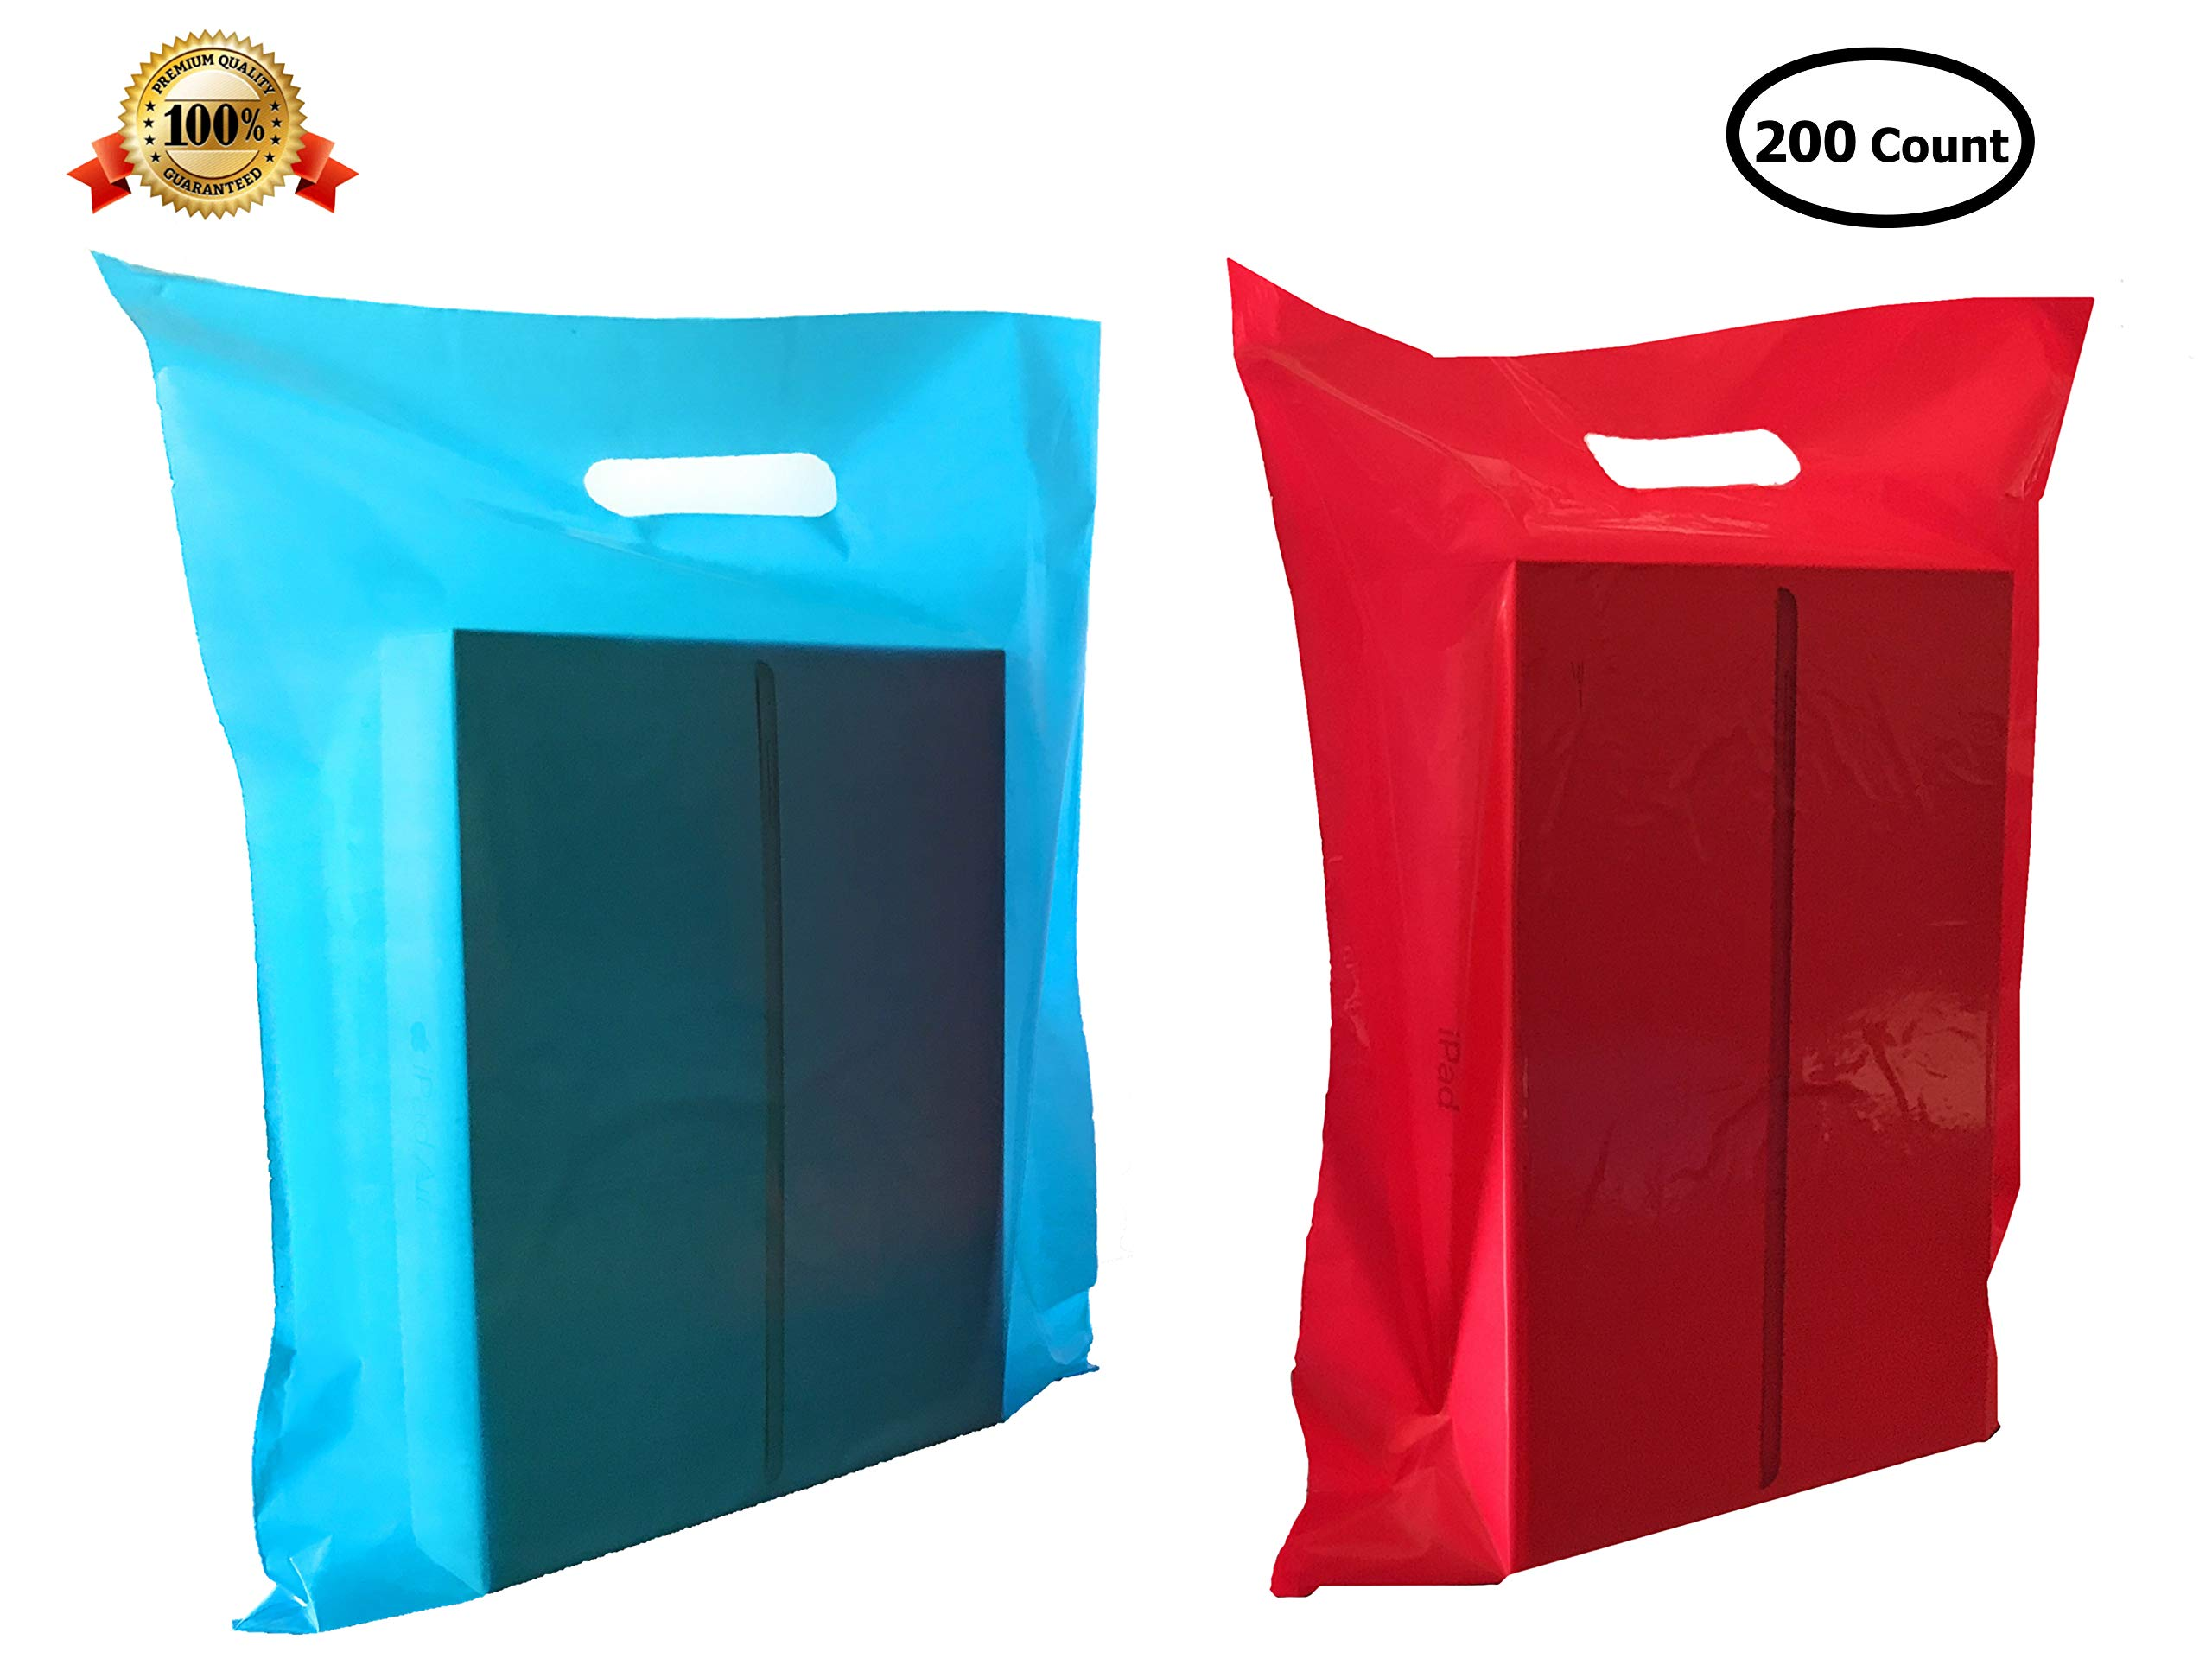 200 12'' X 15'' Medium Pink and Blue Merchandise Bags, Comfortable Die Cut Handles, Premium, Extra Thick. Strong, Durable, Tear-Resistant Glossy Bags, Perfect for Retail, Boutiques, or Any Other Events